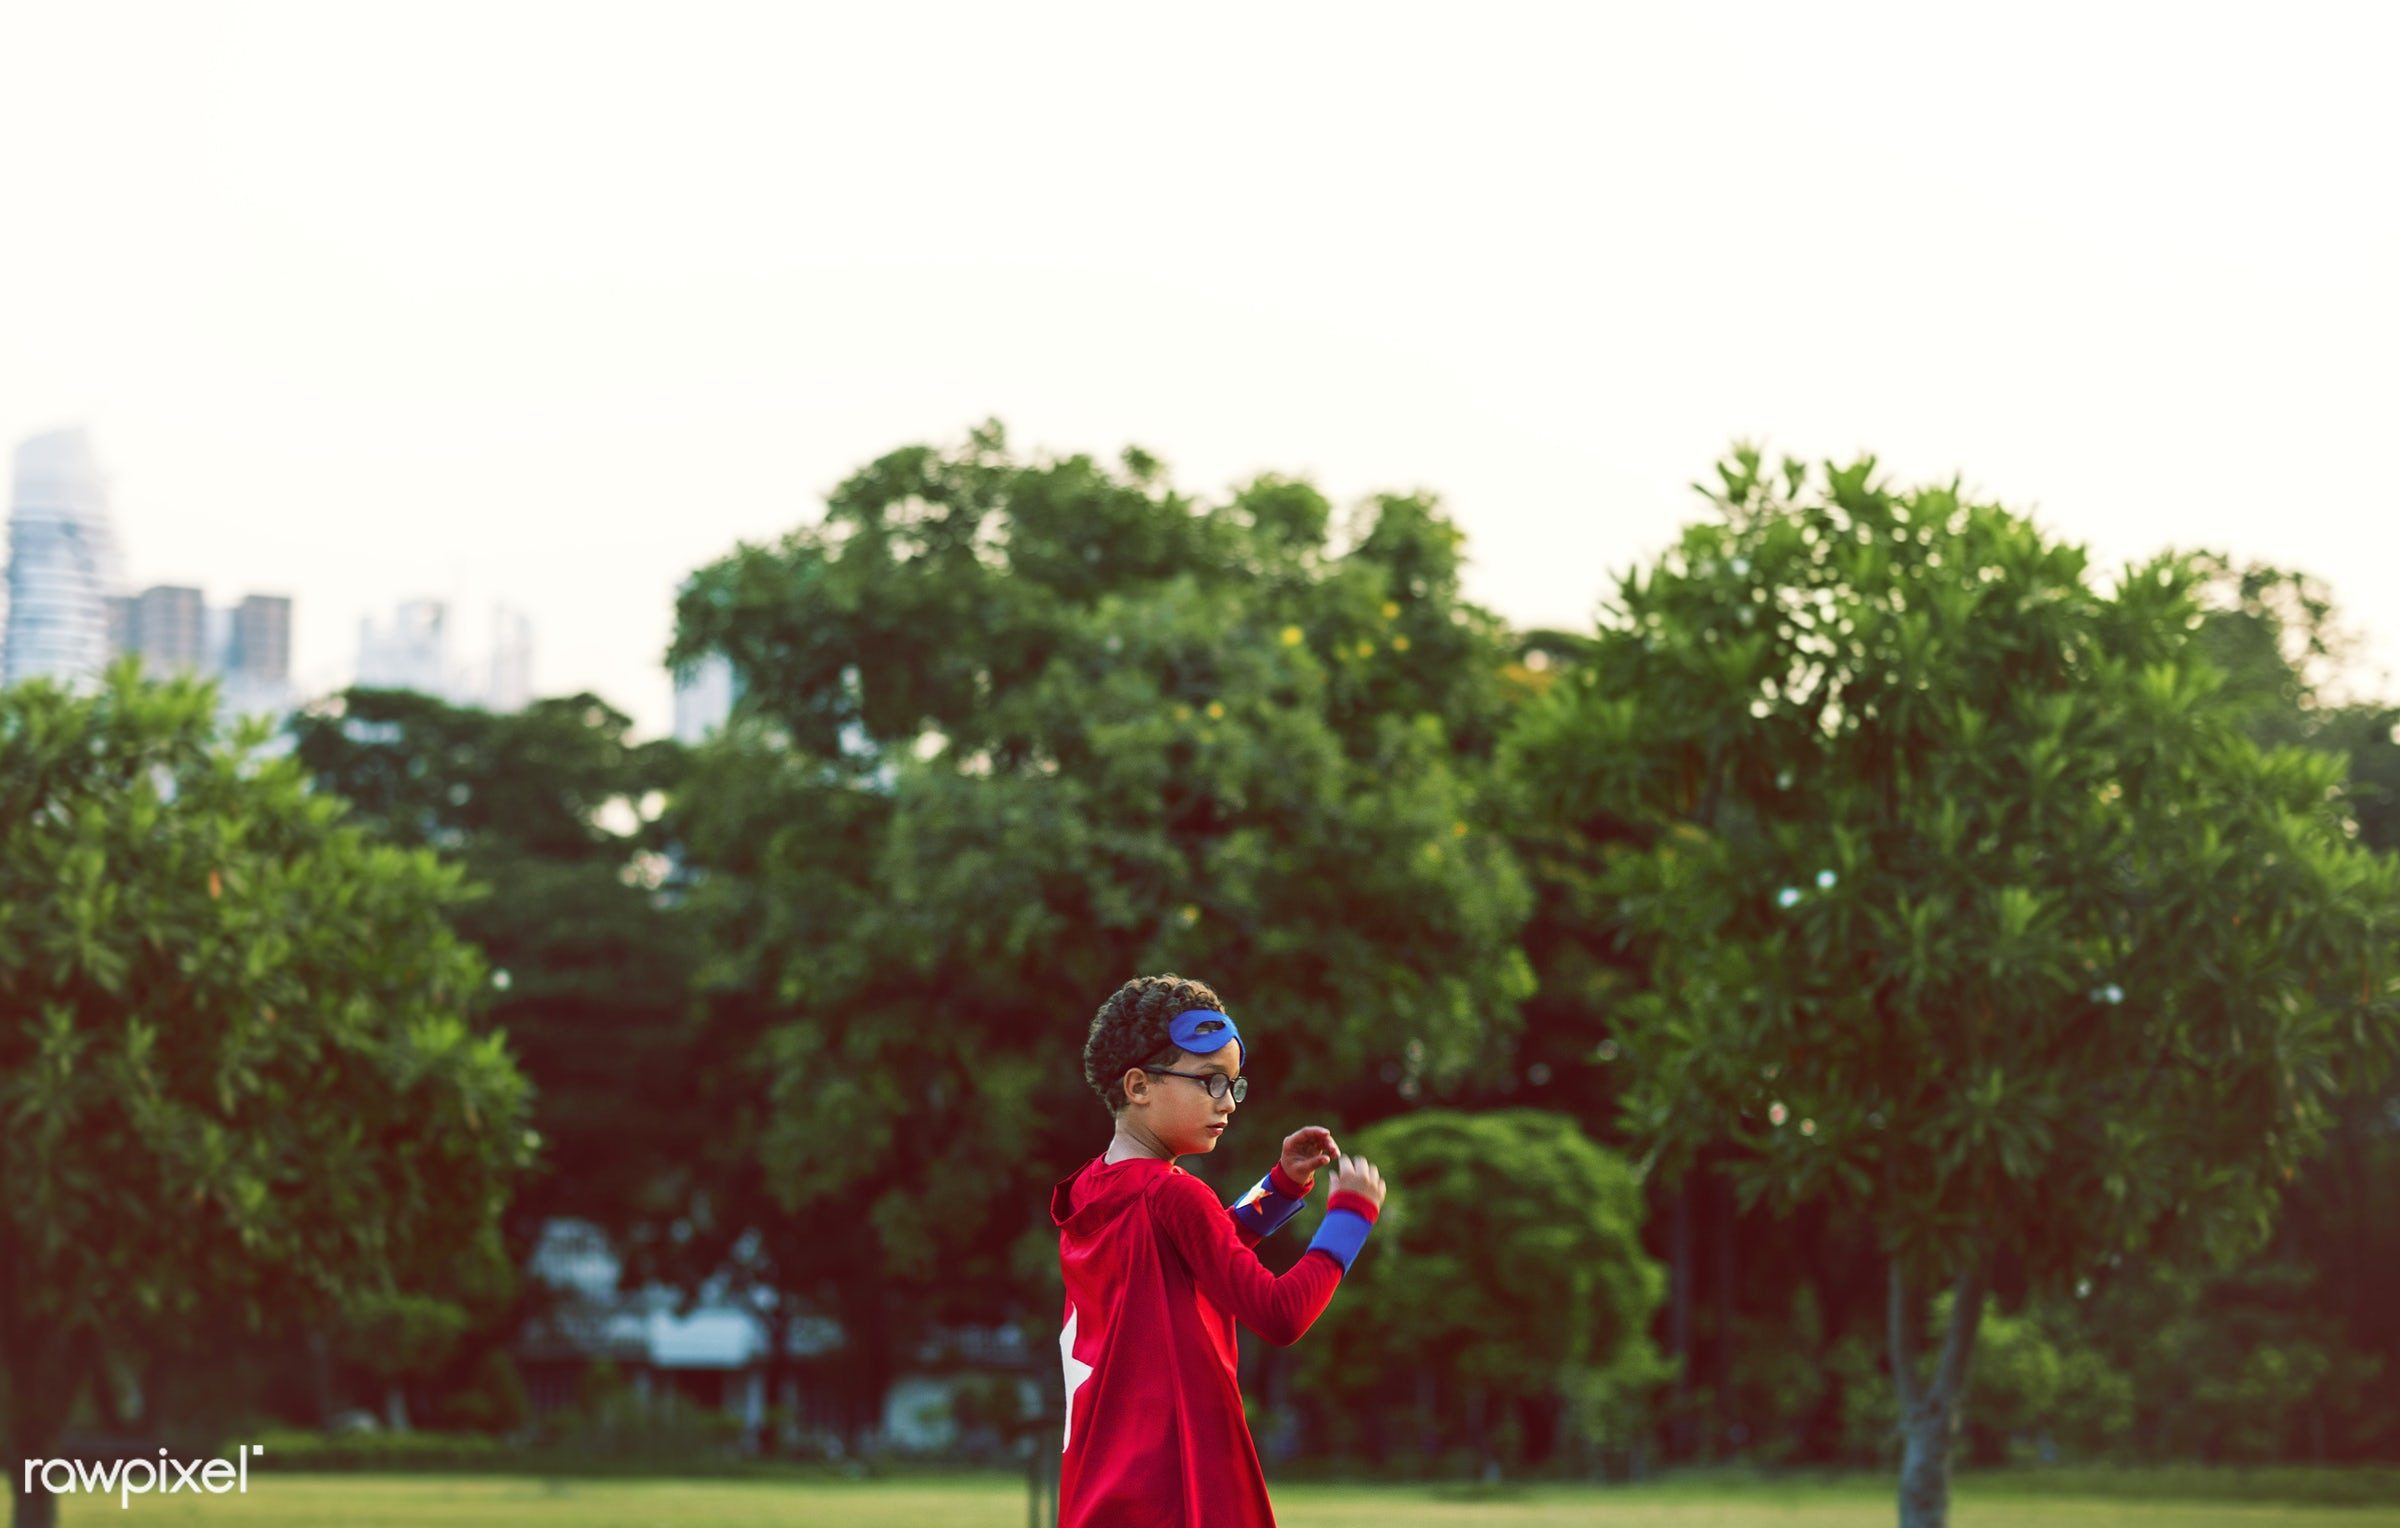 superhero, action, activities, aspiration, boy, casual, cheerful, child, childhood, children, colorful, costume, cute,...